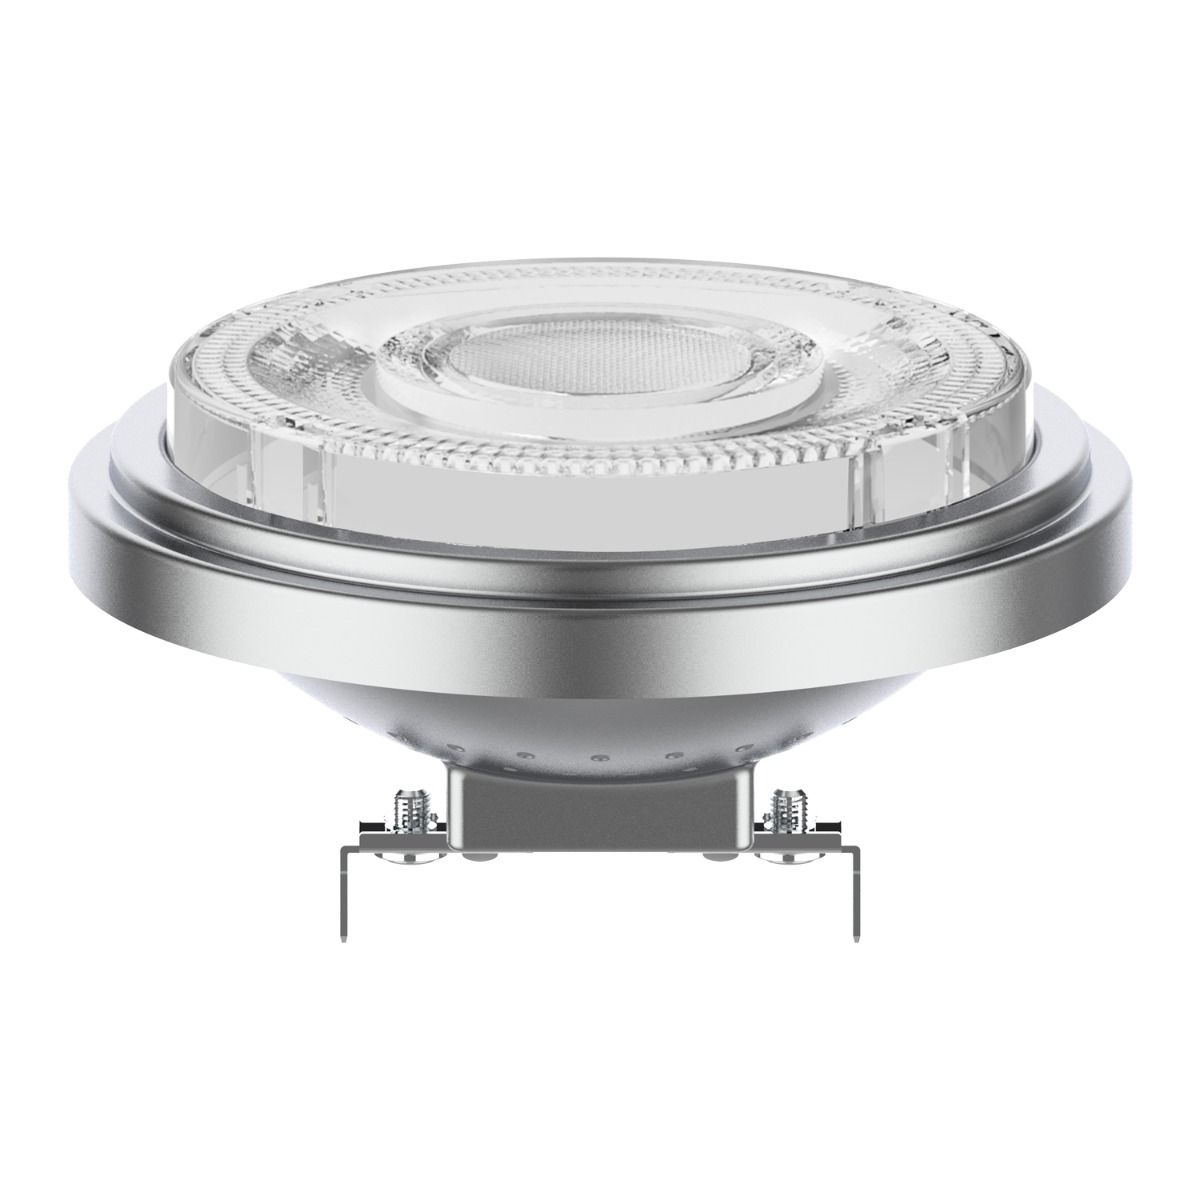 Noxion Lucent LED Spot AR111 G53 12V 11.5W 930 24D | Dimmable - Best Colour Rendering - Replaces 75W